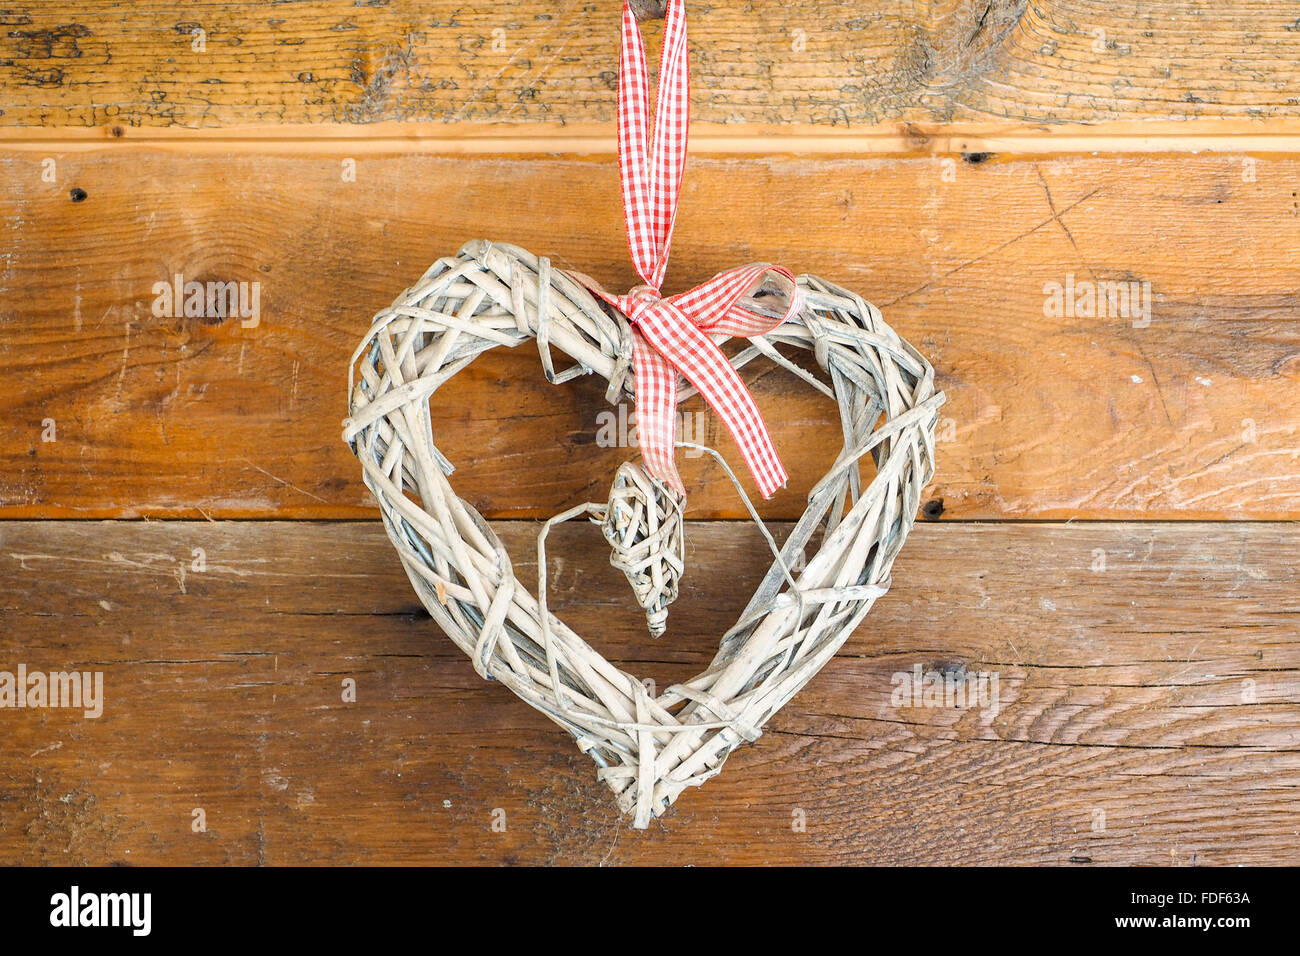 Home made heart built with straw, hanged to wooden wall to celebrate Saint Valentine day. - Stock Image